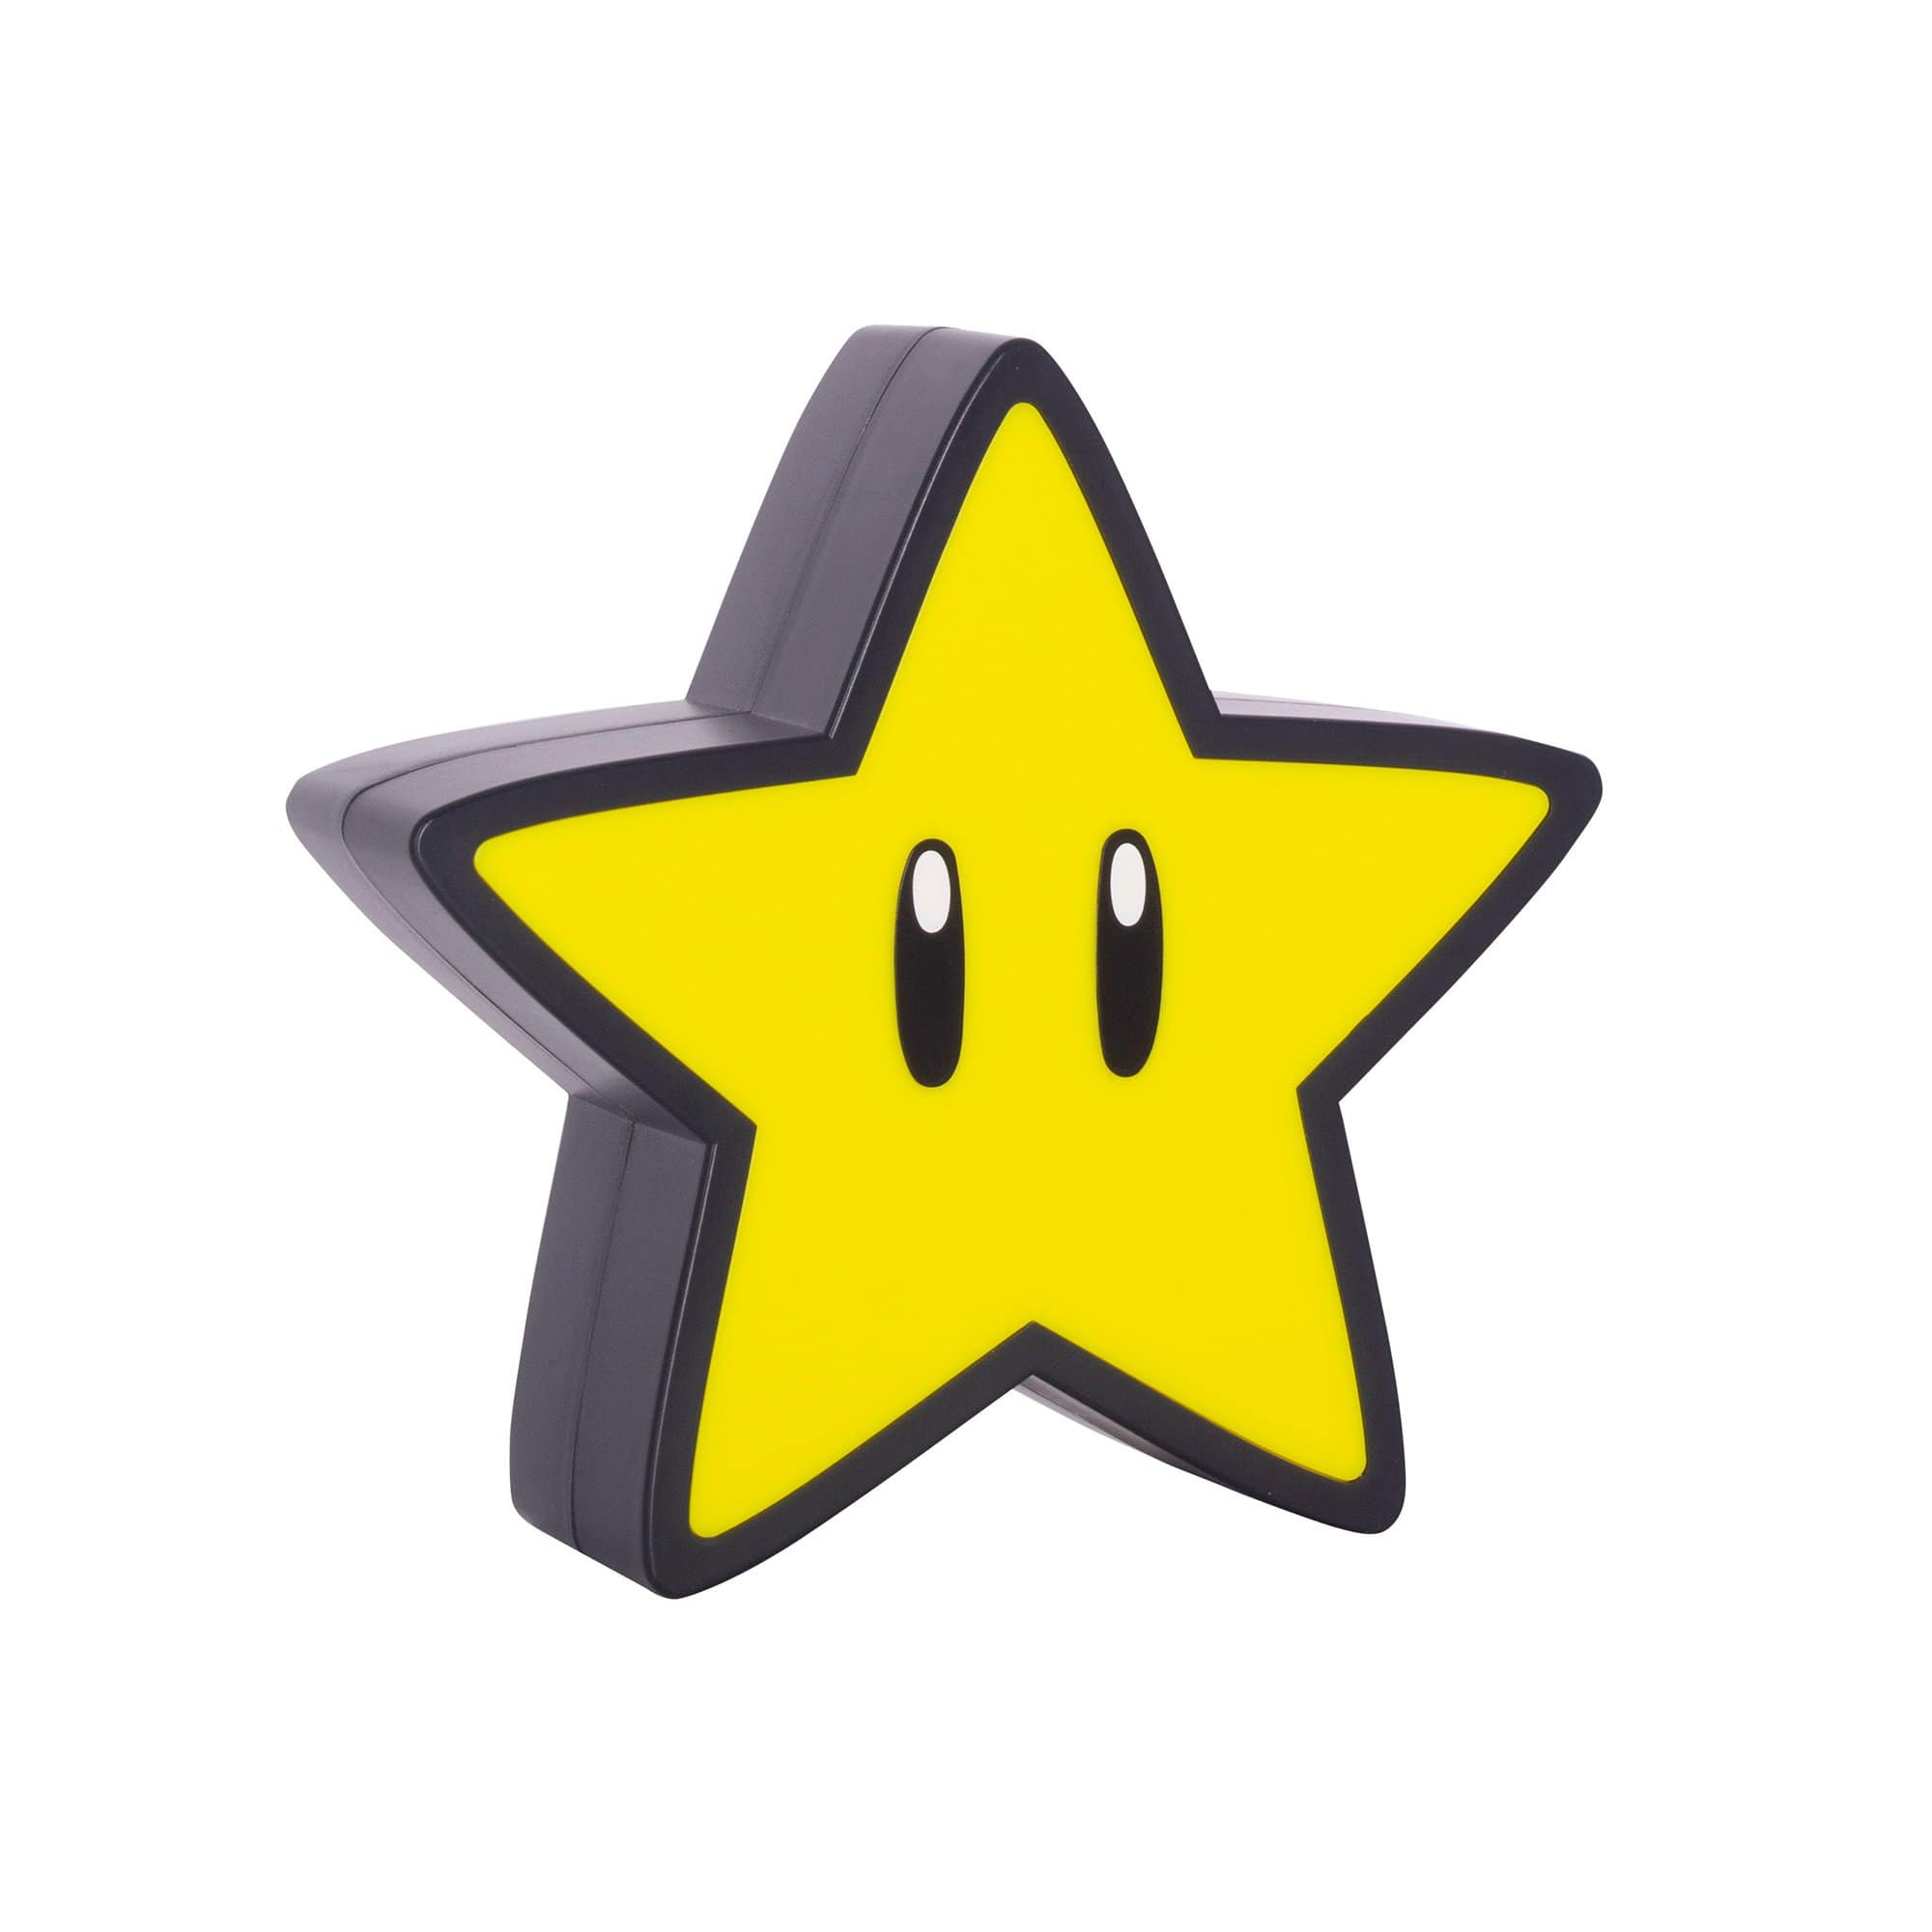 Super Mario Super Star Light made by Paladone, sold by HIDEit Mounts. Small yellow star light.